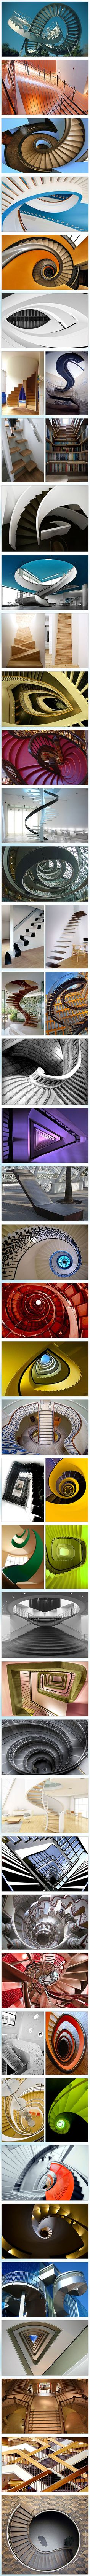 Stair Extraordinaire—50 Creative and Beautiful Stair Images